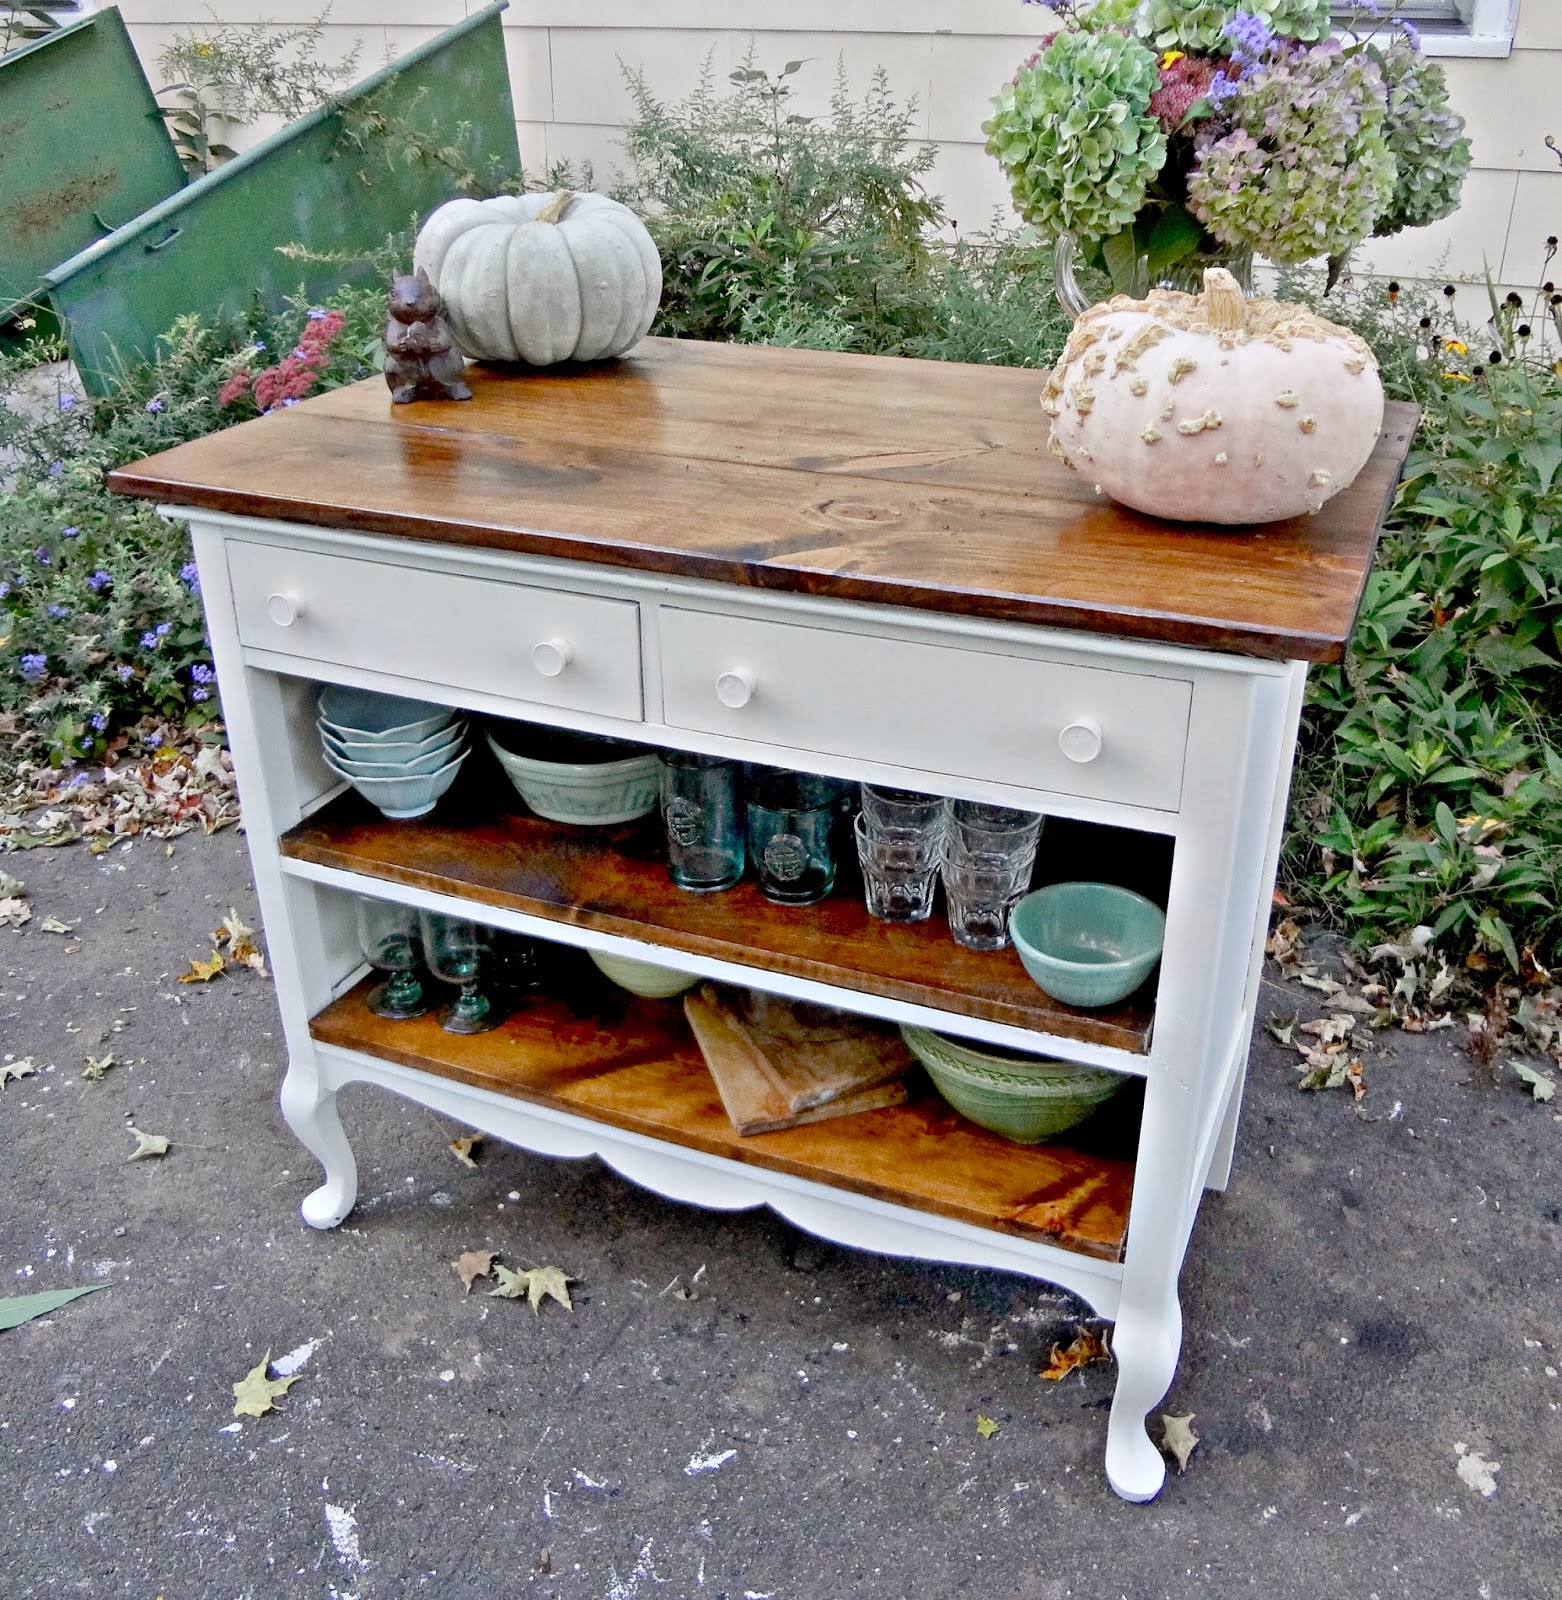 Repurposed Antique Dresser As A Kitchen Island With A: Heir And Space: Antique Dresser Turned Kitchen Island